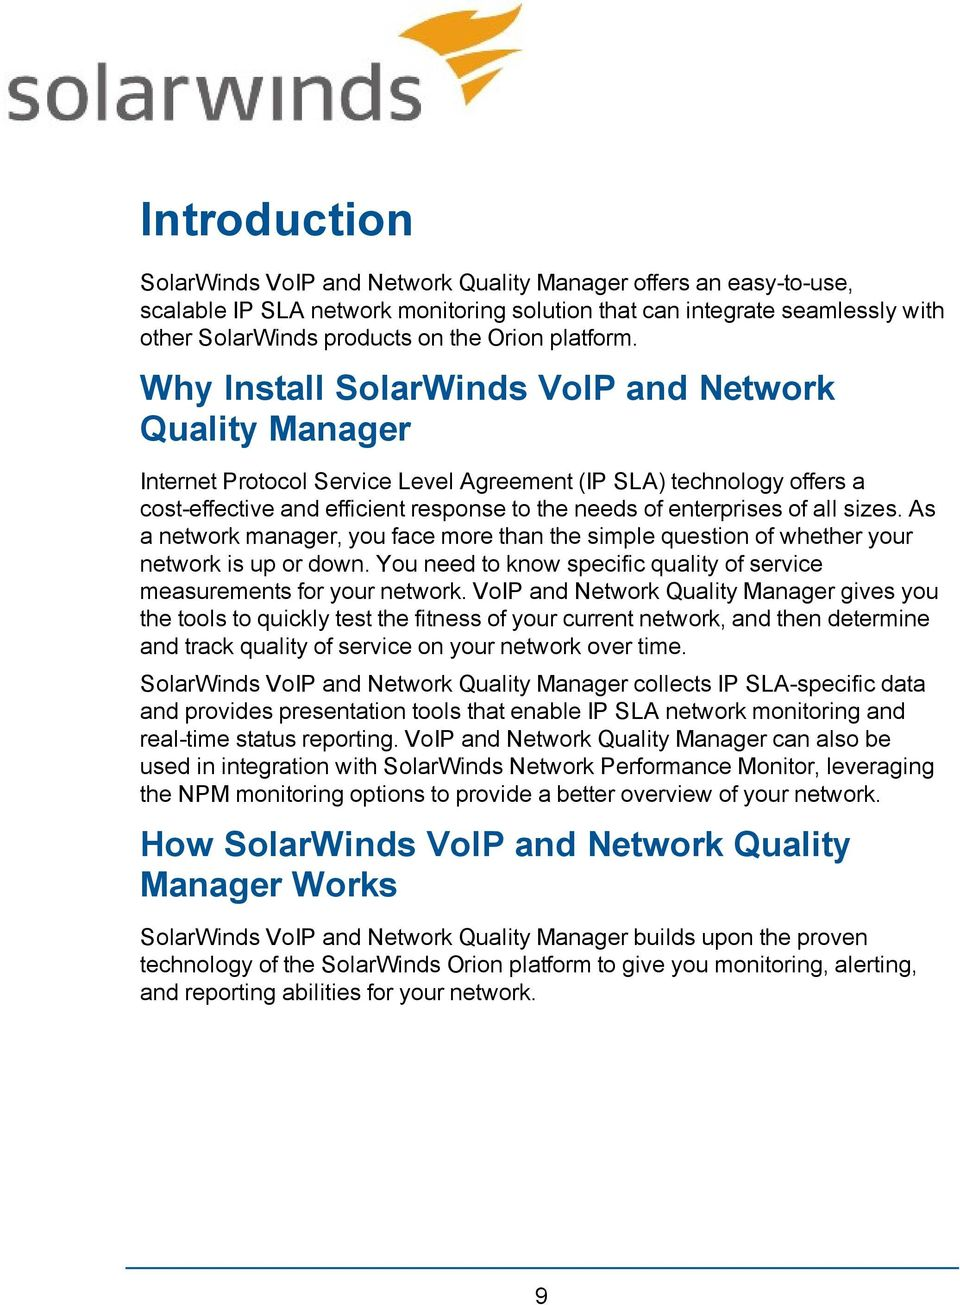 Why Install SolarWinds VoIP and Network Quality Manager Internet Protocol Service Level Agreement (IP SLA) technology offers a cost-effective and efficient response to the needs of enterprises of all